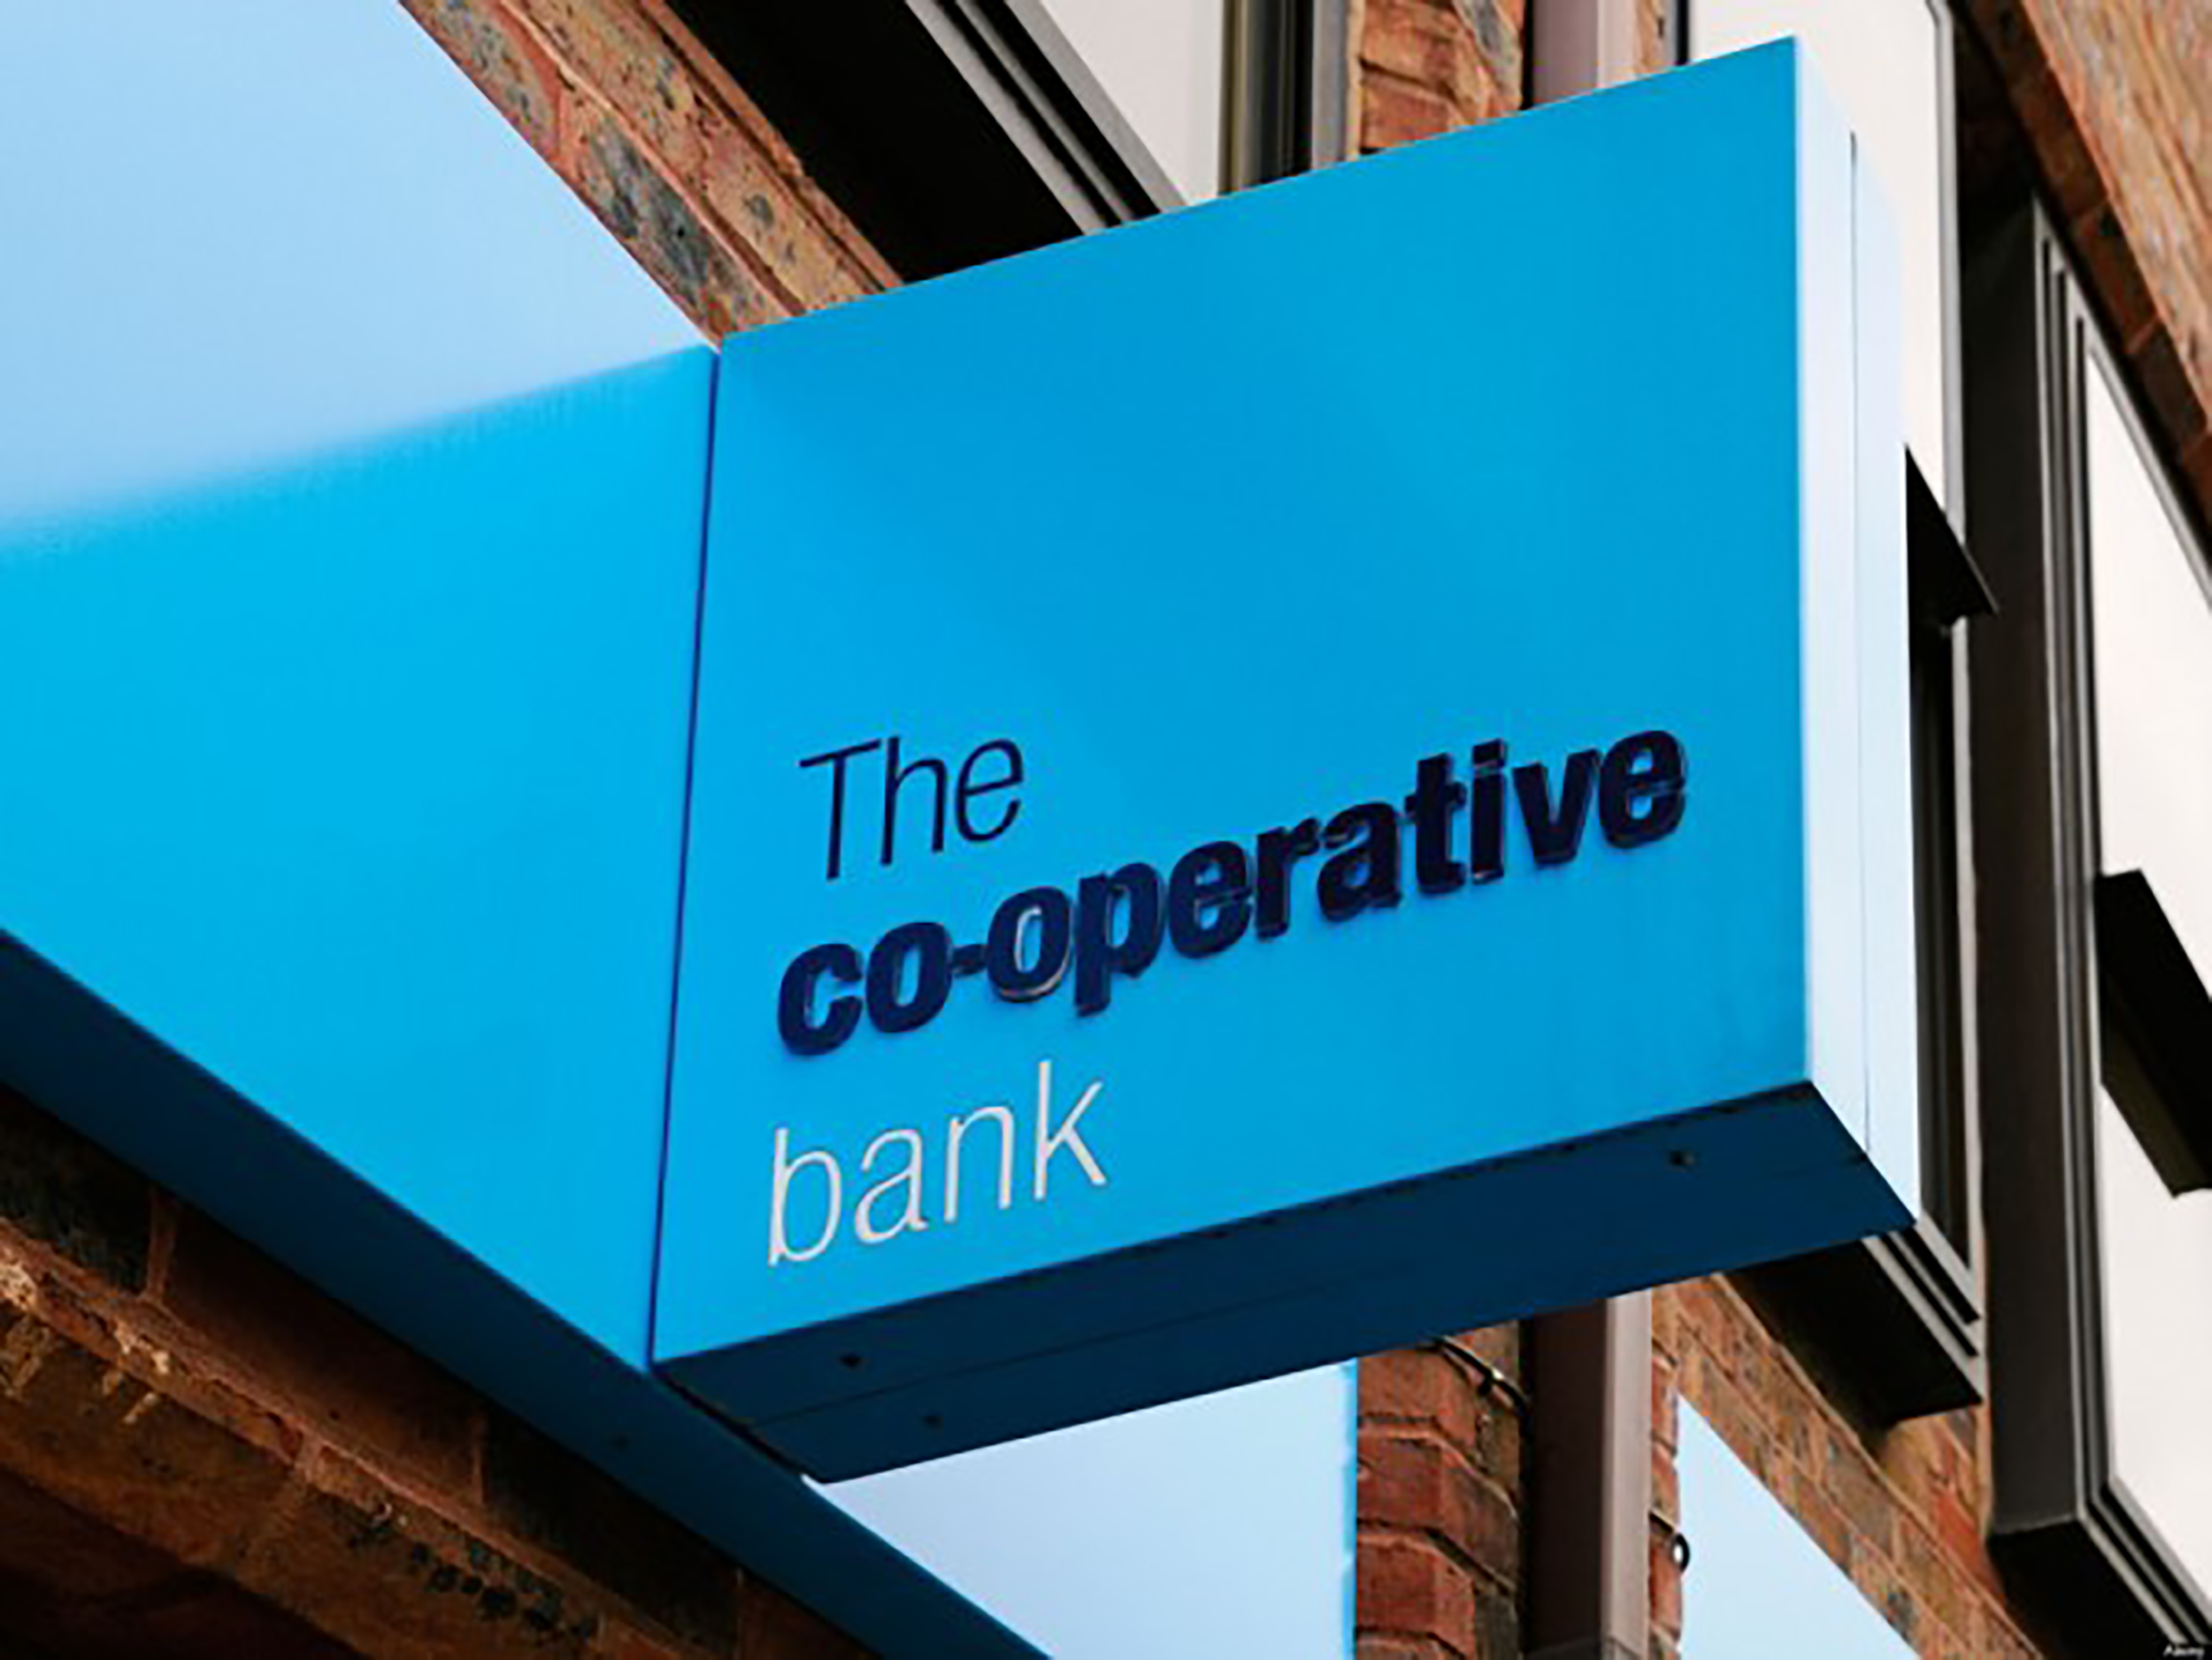 cooperative banks Co-operative banks outperform shareholder banks on a number of measures: they generate more stable long-term profits, they provide better customer service, and they boost local economies by lending more to small and medium-sized businesses plus, their more prudential approach to managing capital.